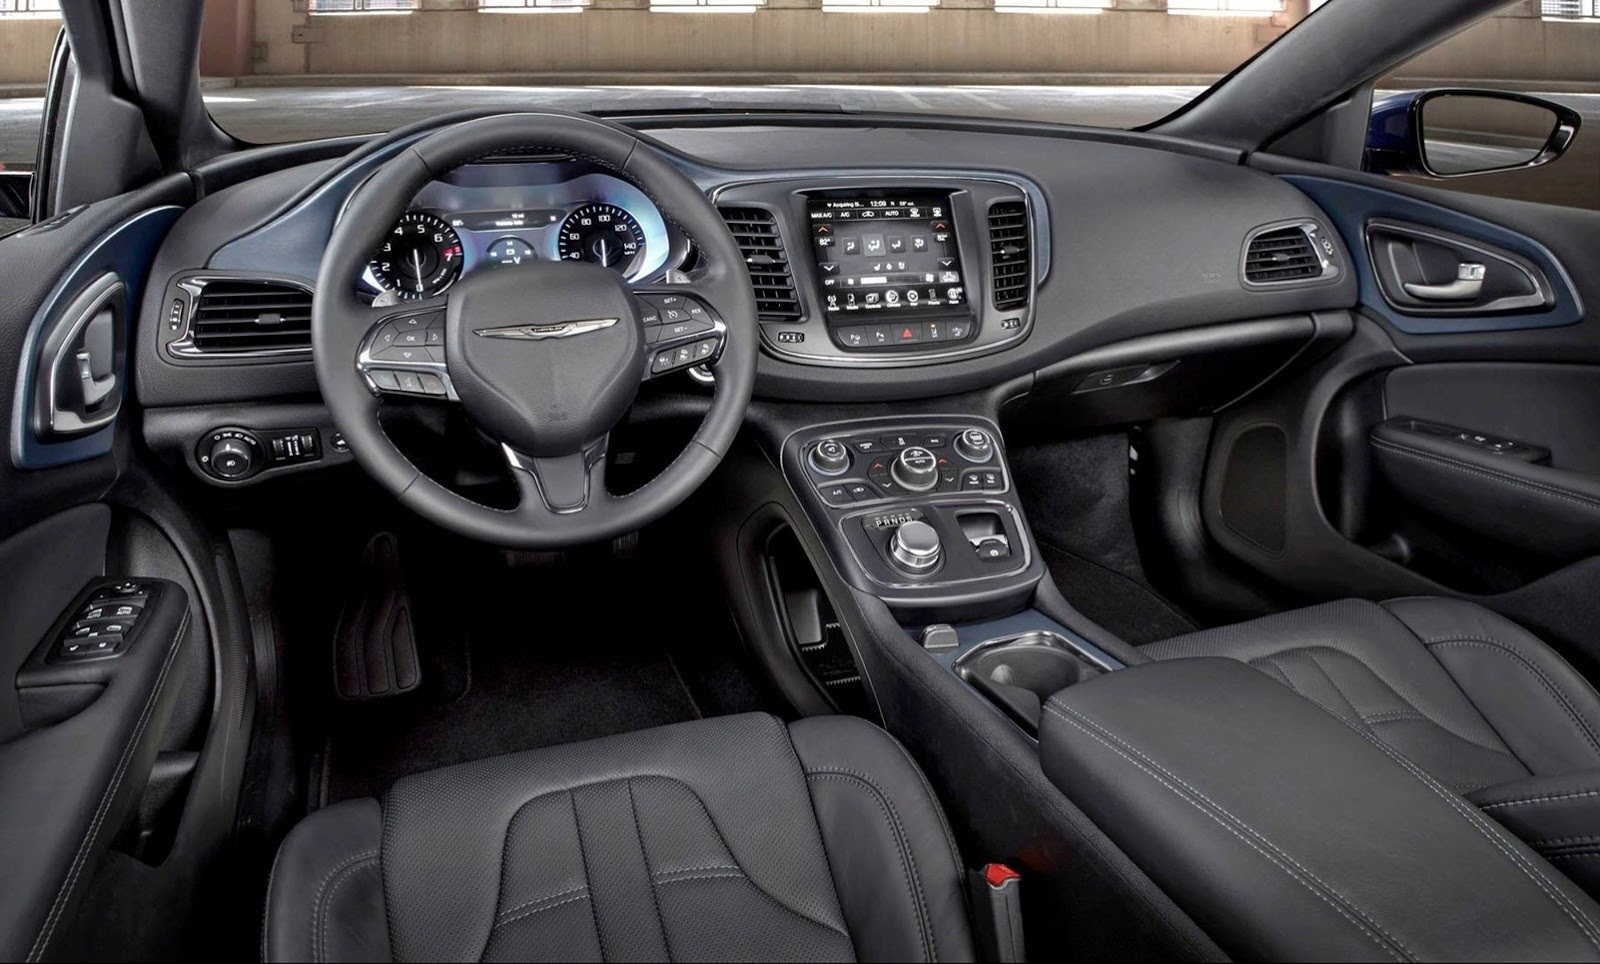 2015 Chrysler 200 Cockpit Interio (View 5 of 11)